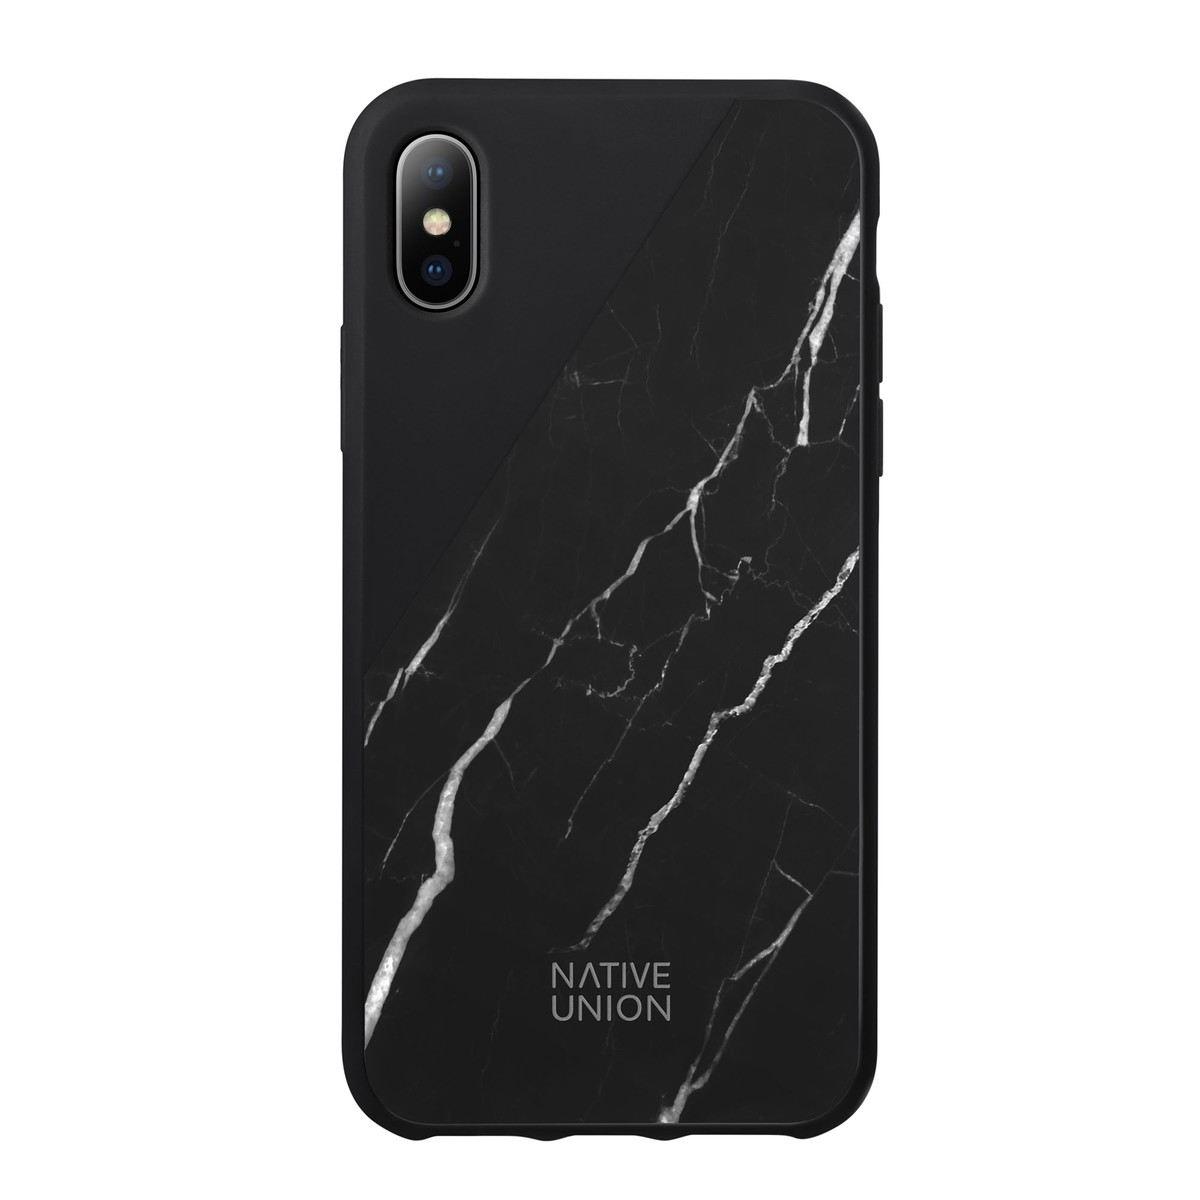 NATIVE UNION ネイティブユニオン iPhoneケース Clic Marble iPhone X Case